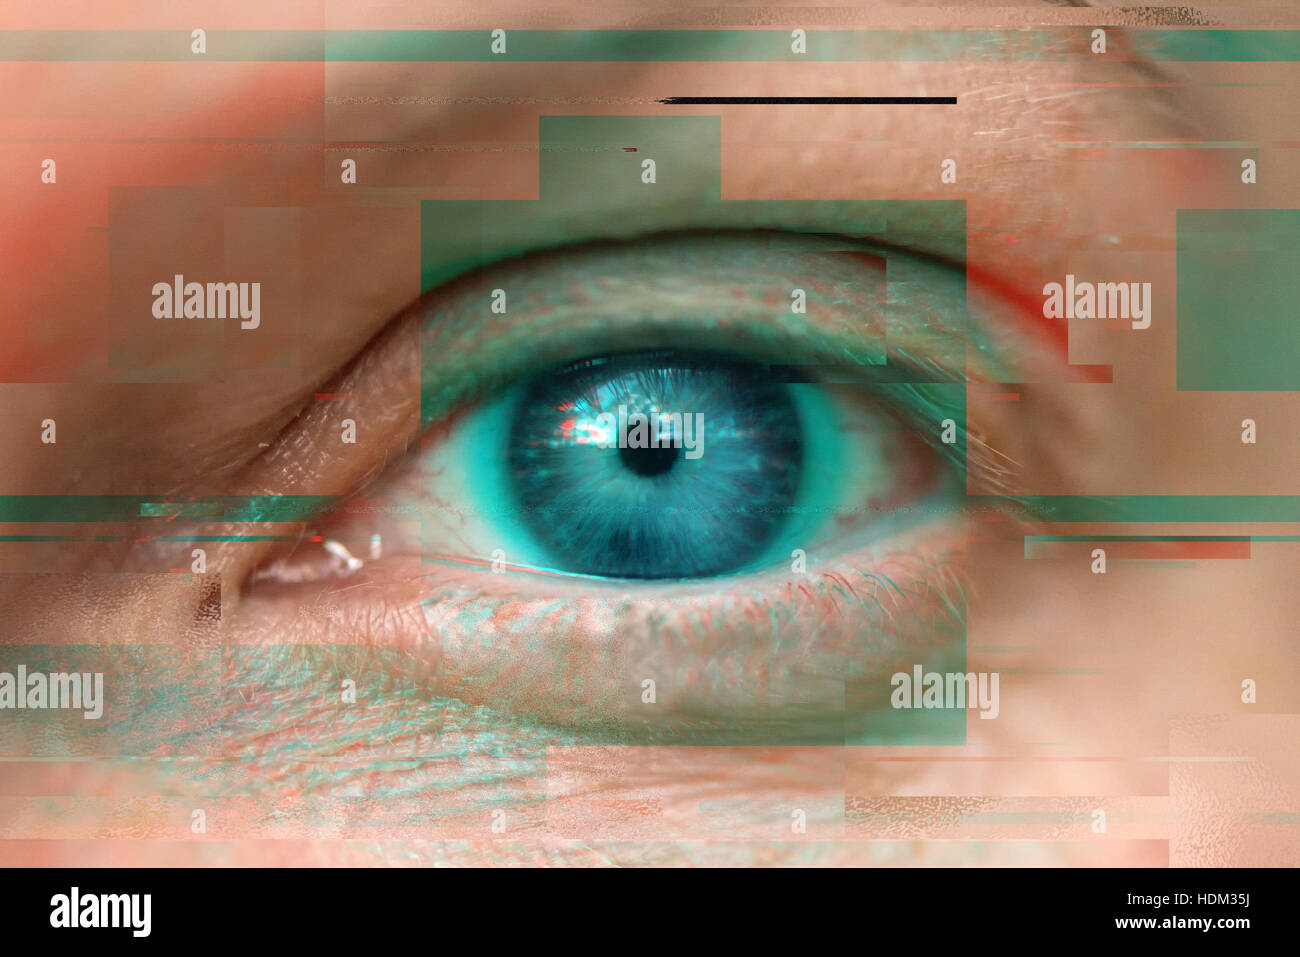 Blue female eye with digital glitch effect, modern electronics and visual technology concept - Stock Image